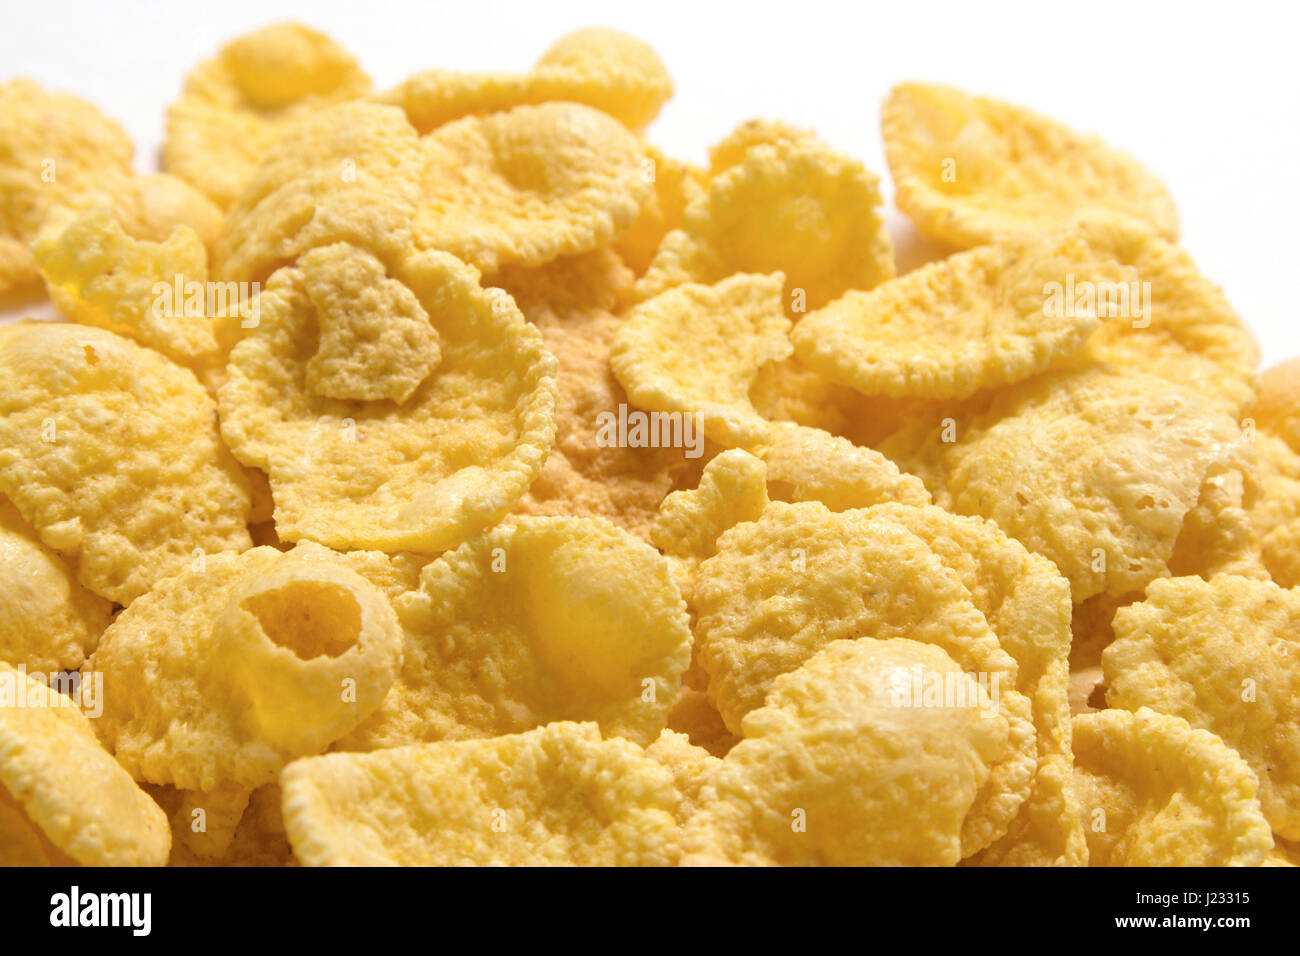 Gold corn flakes heaped on the white table. - Stock Image